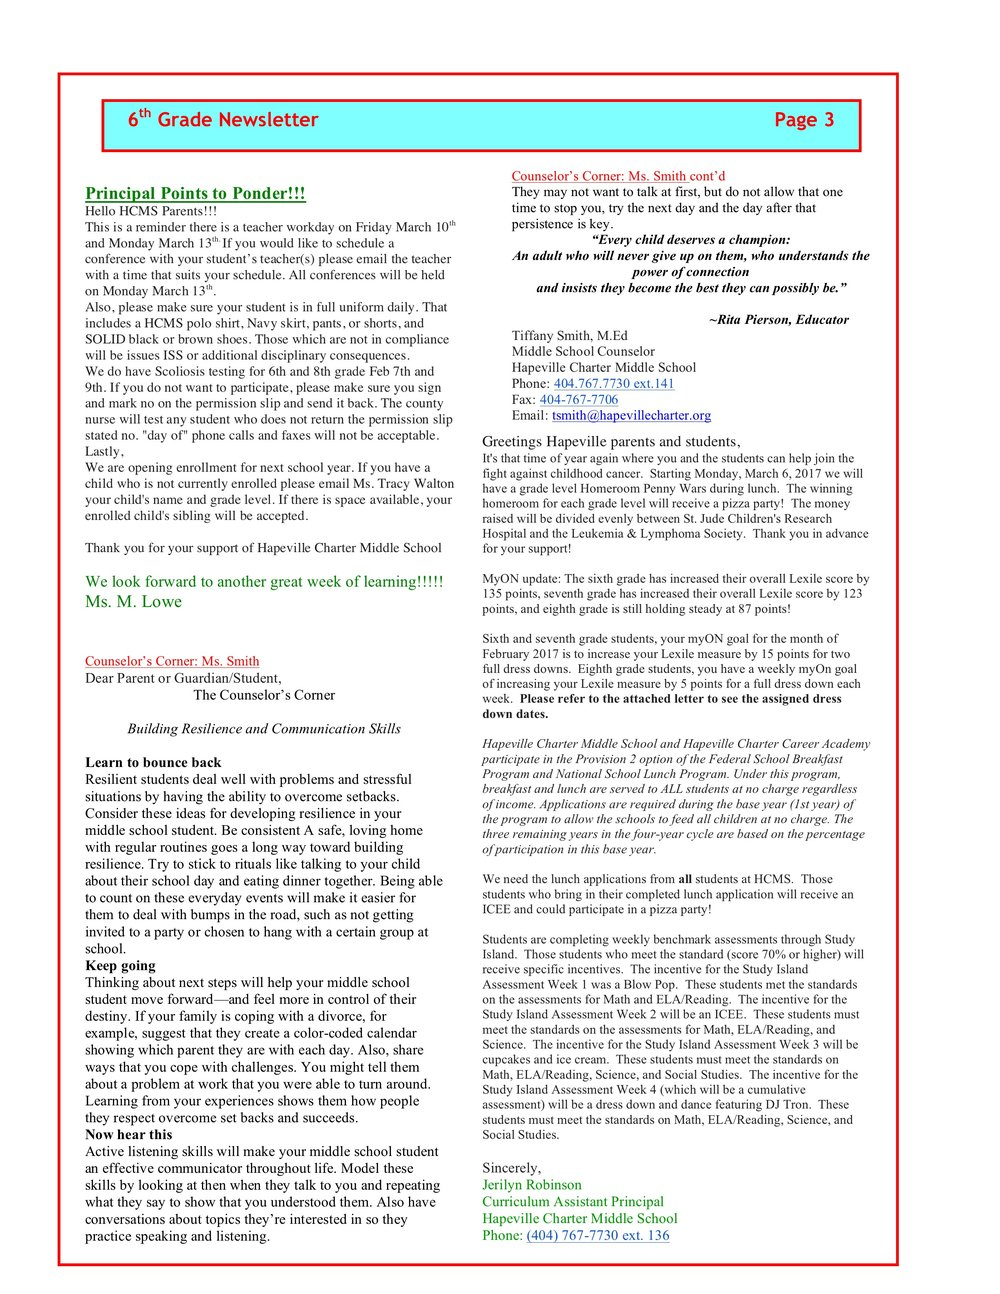 Newsletter Image6th Grade Newsletter 3-7-2017 3.jpeg